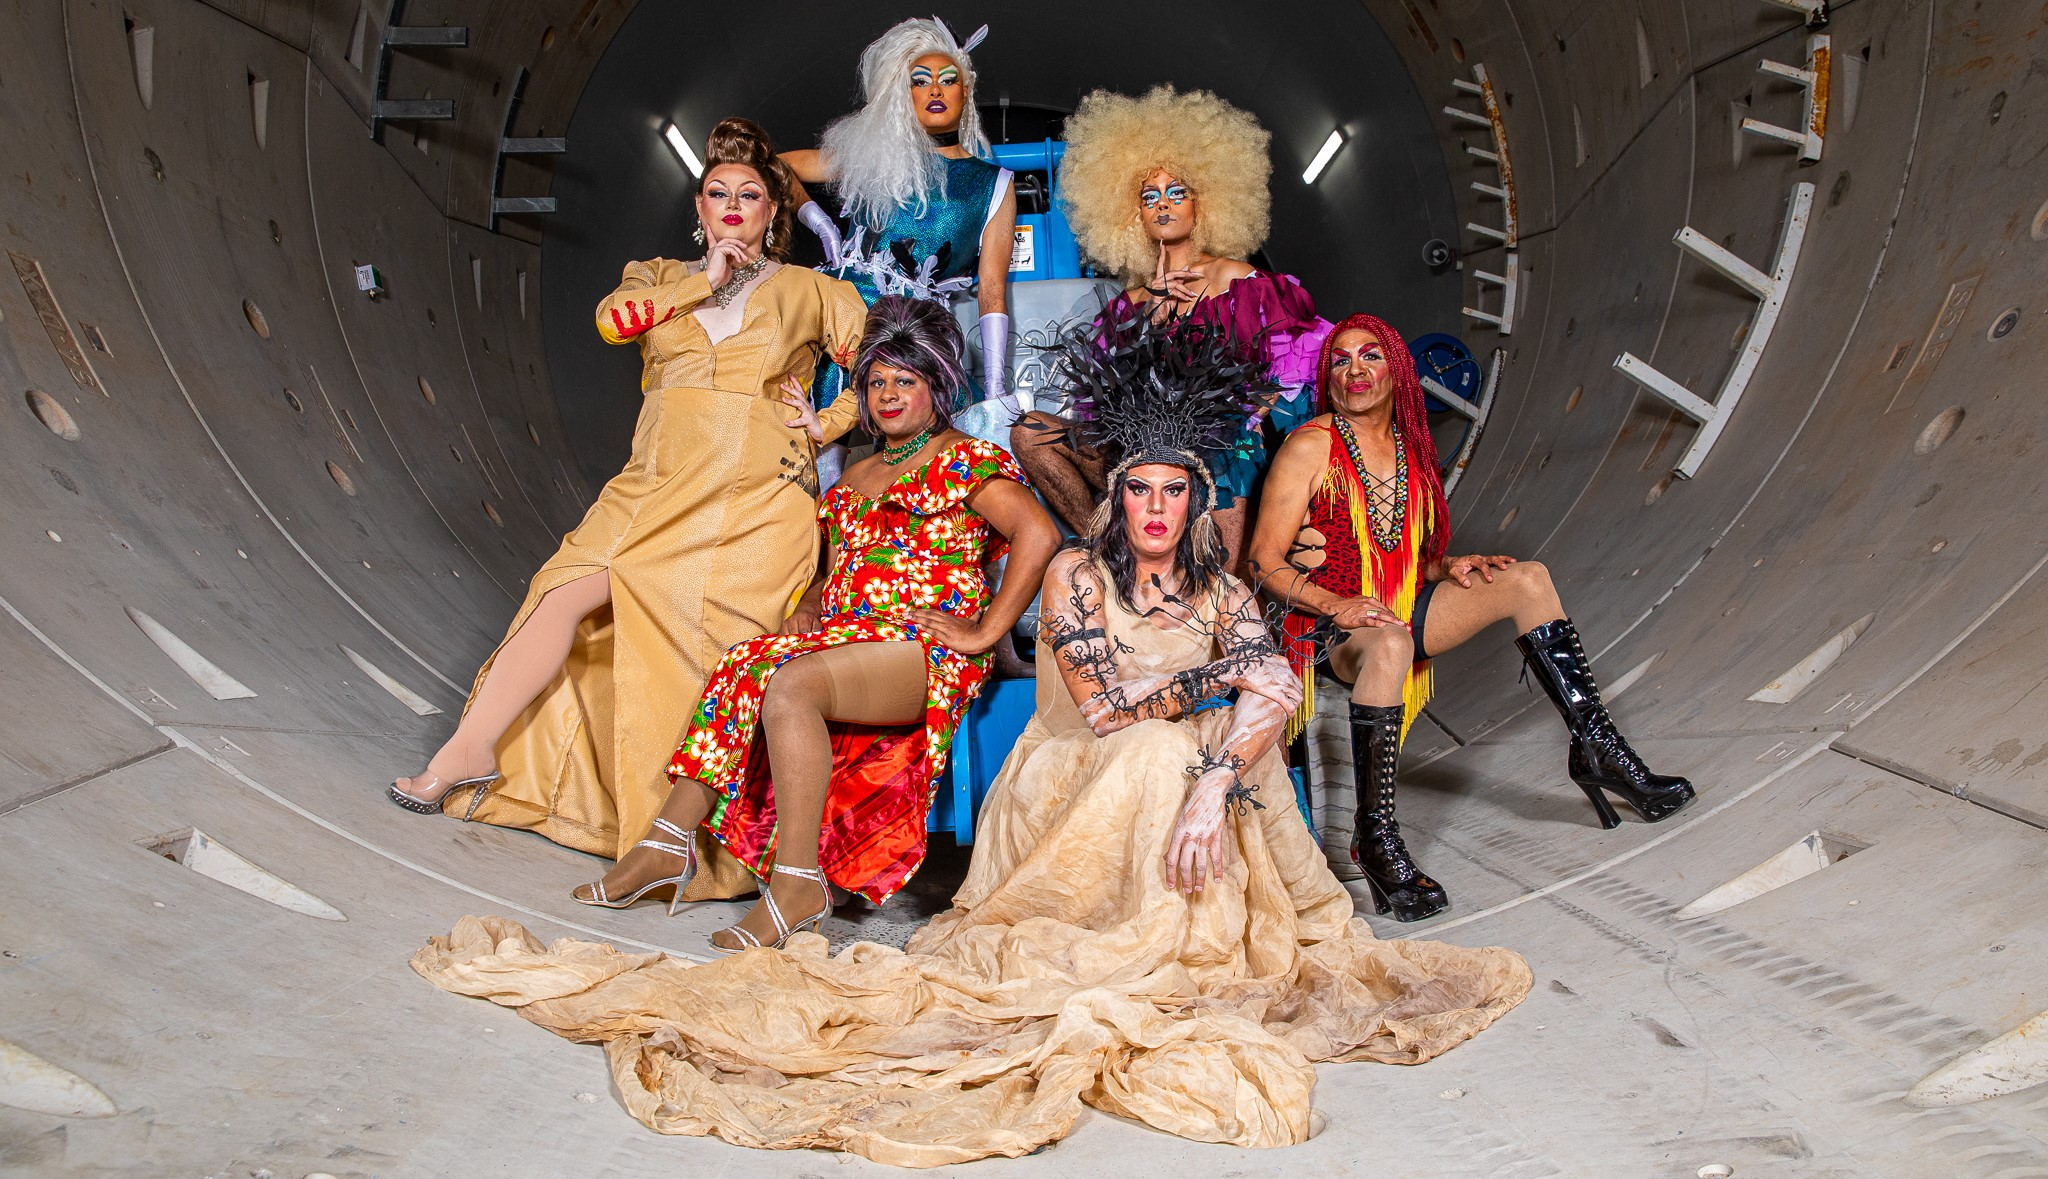 Six Indigenous drag queens pose in front of construction equipment in a tunnel